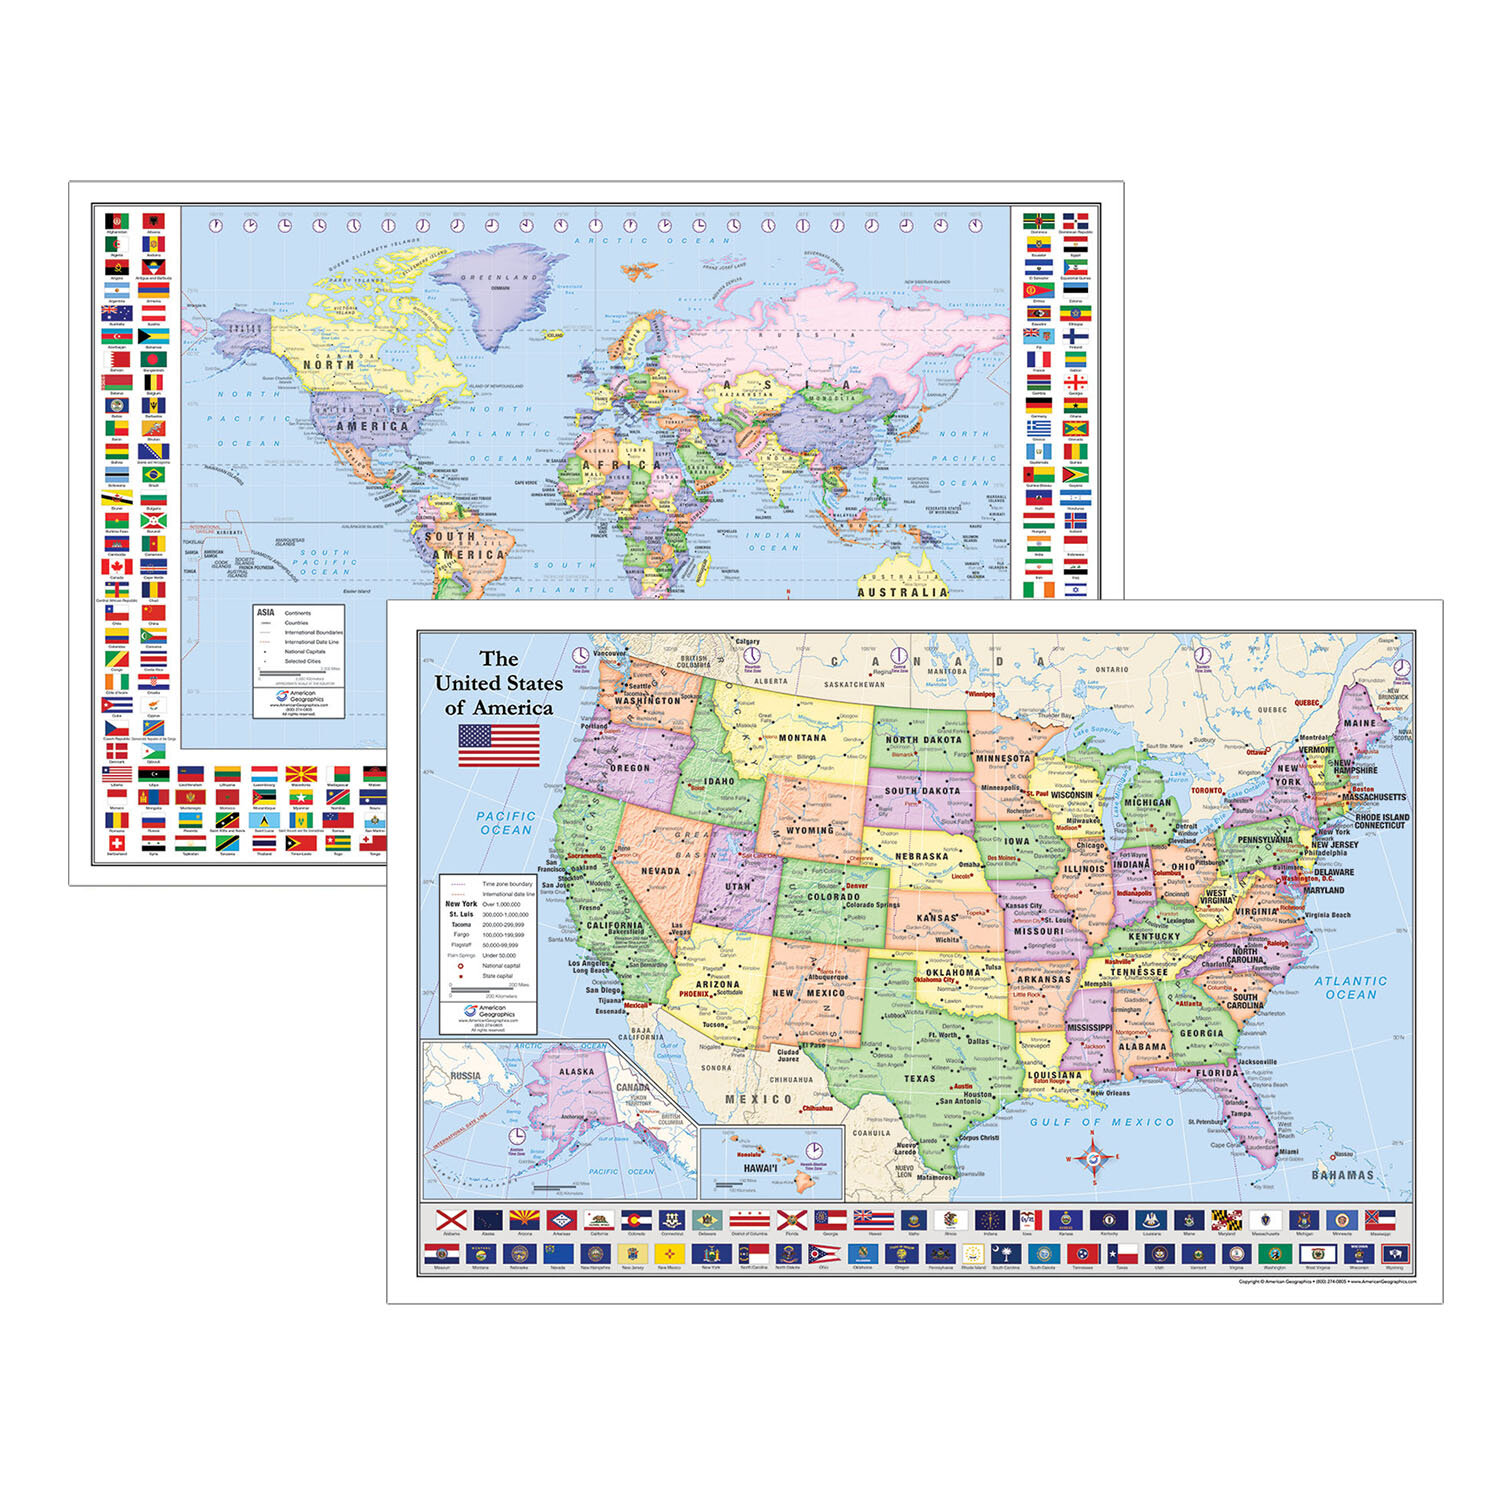 2-Piece Laminated World and U.S. Maps with Flags on print usa map, framed usa map, colored usa map, digital usa map, decorative usa map, foam usa map, standard usa map, black usa map, textured usa map, numbered usa map, usa geography map, cork usa map, curved usa map, complete usa map, wooden usa map, usa accent map, plain usa map, quartz usa map, clear usa map, white usa map,